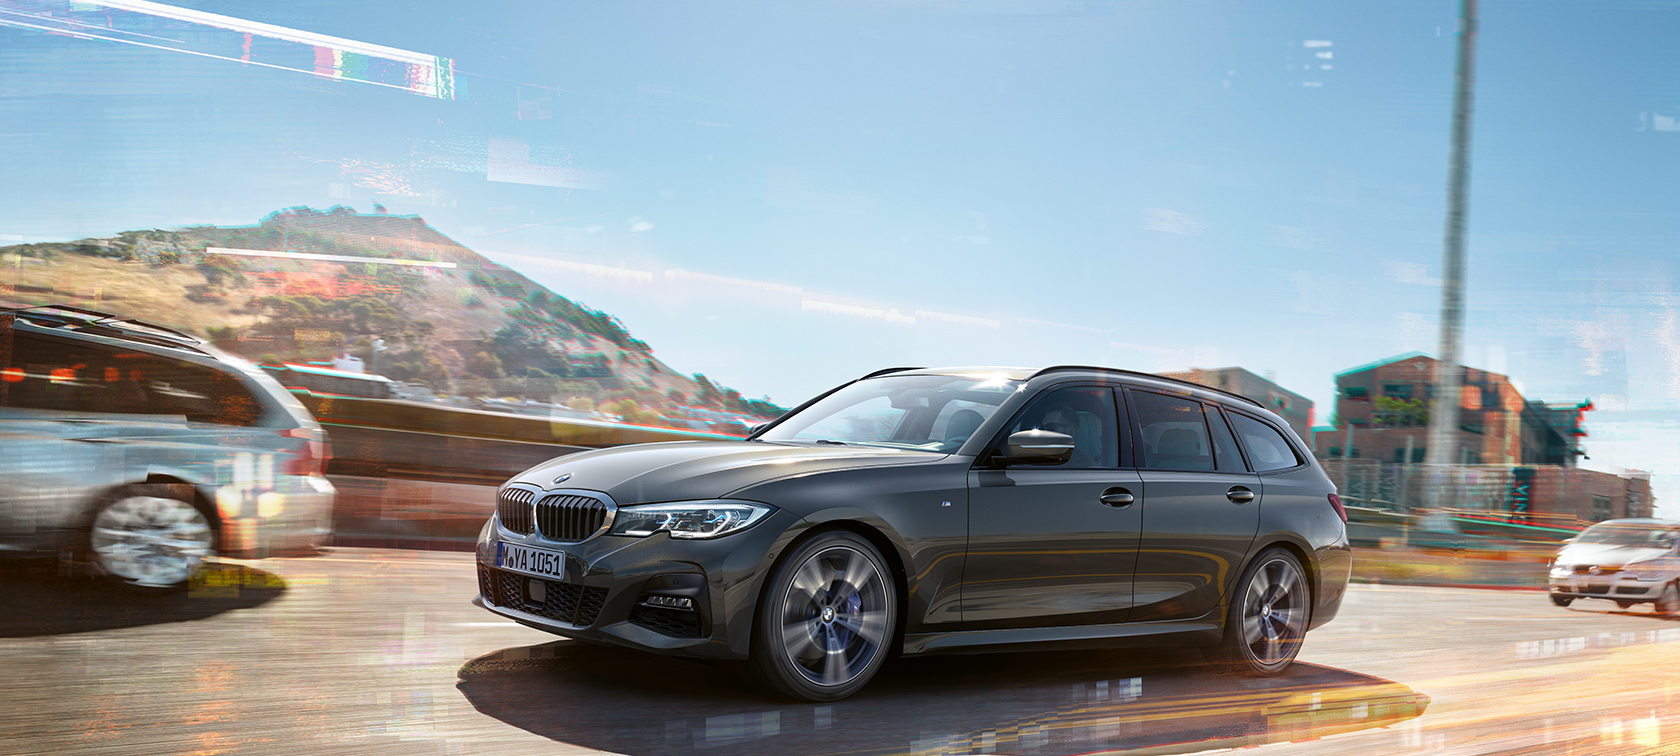 BMW Serie 3 Touring, ripresa laterale in movimento con case e montagne sullo sfondo